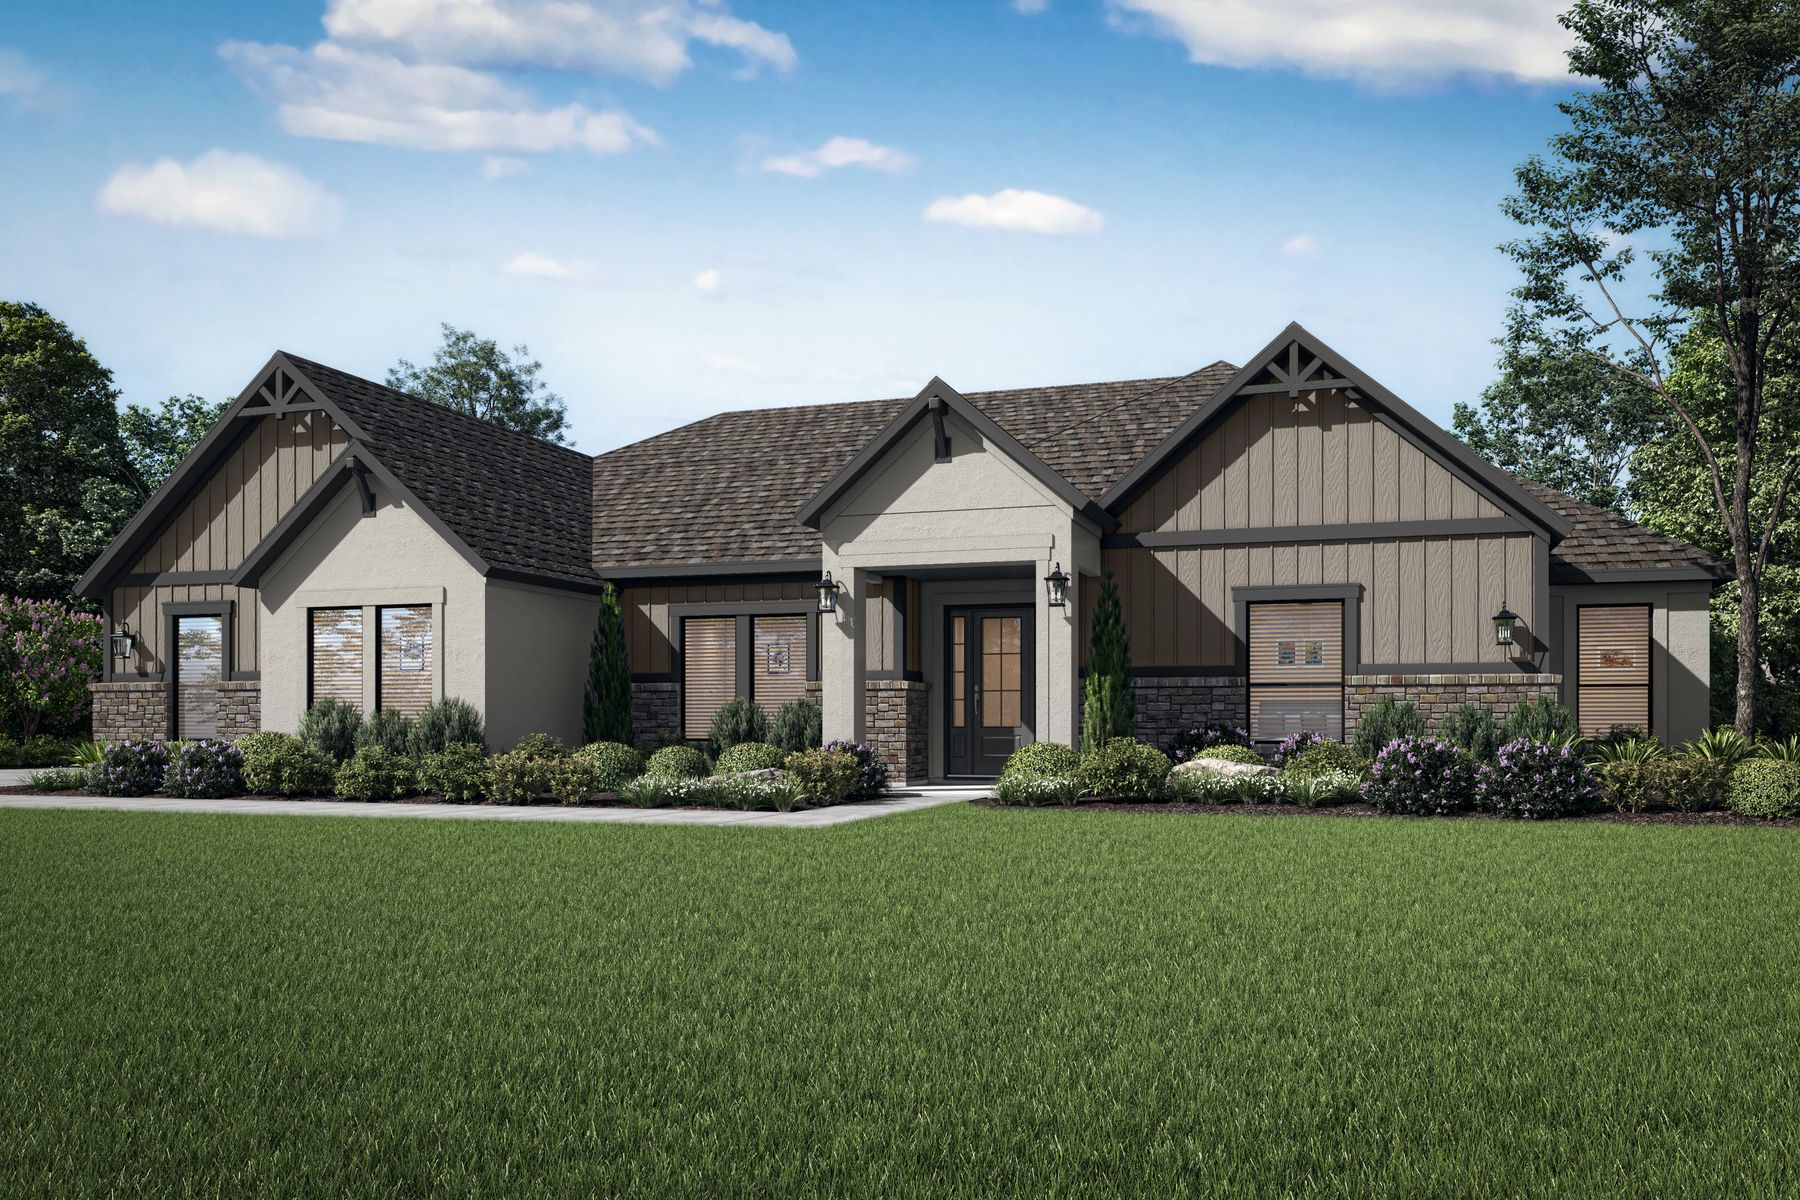 The Mantle by Terrata Homes:The Mantle is a gorgeous single-story home at Spicewood Trails